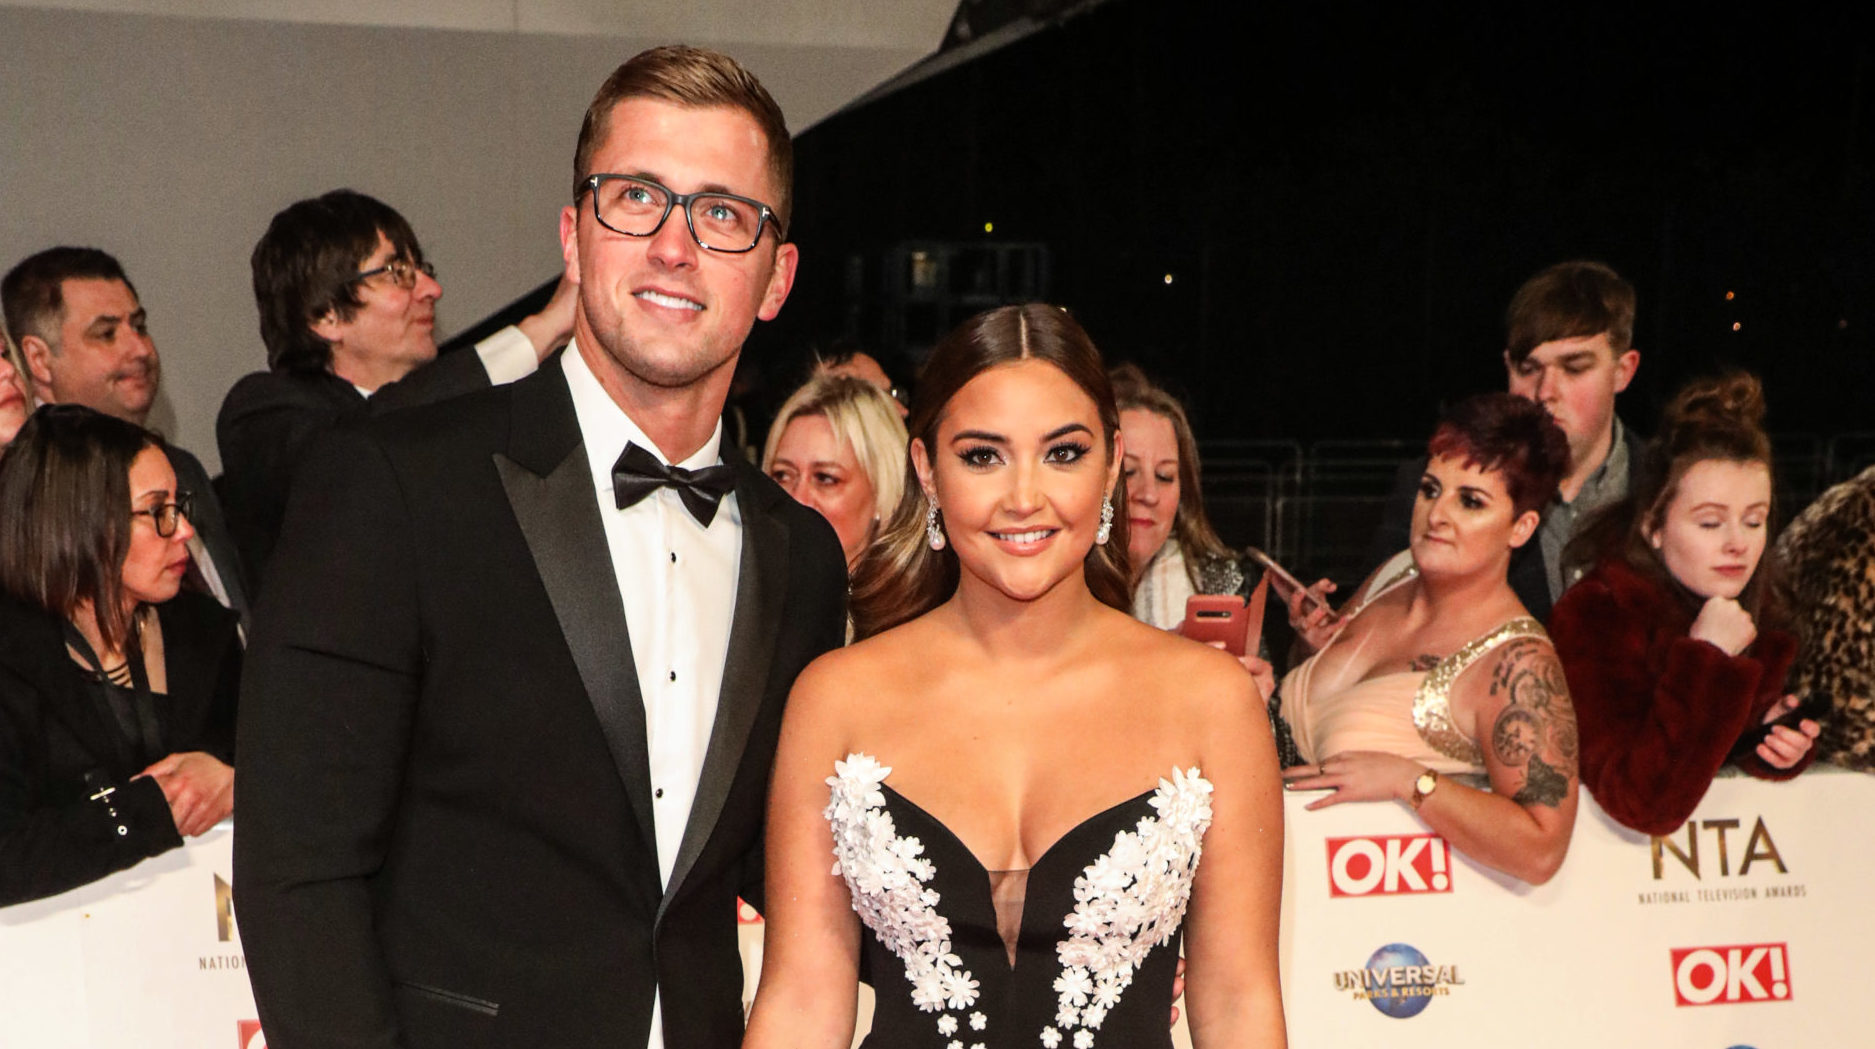 Jacqueline Jossa and Dan Osborne 'working together not against each other' during break